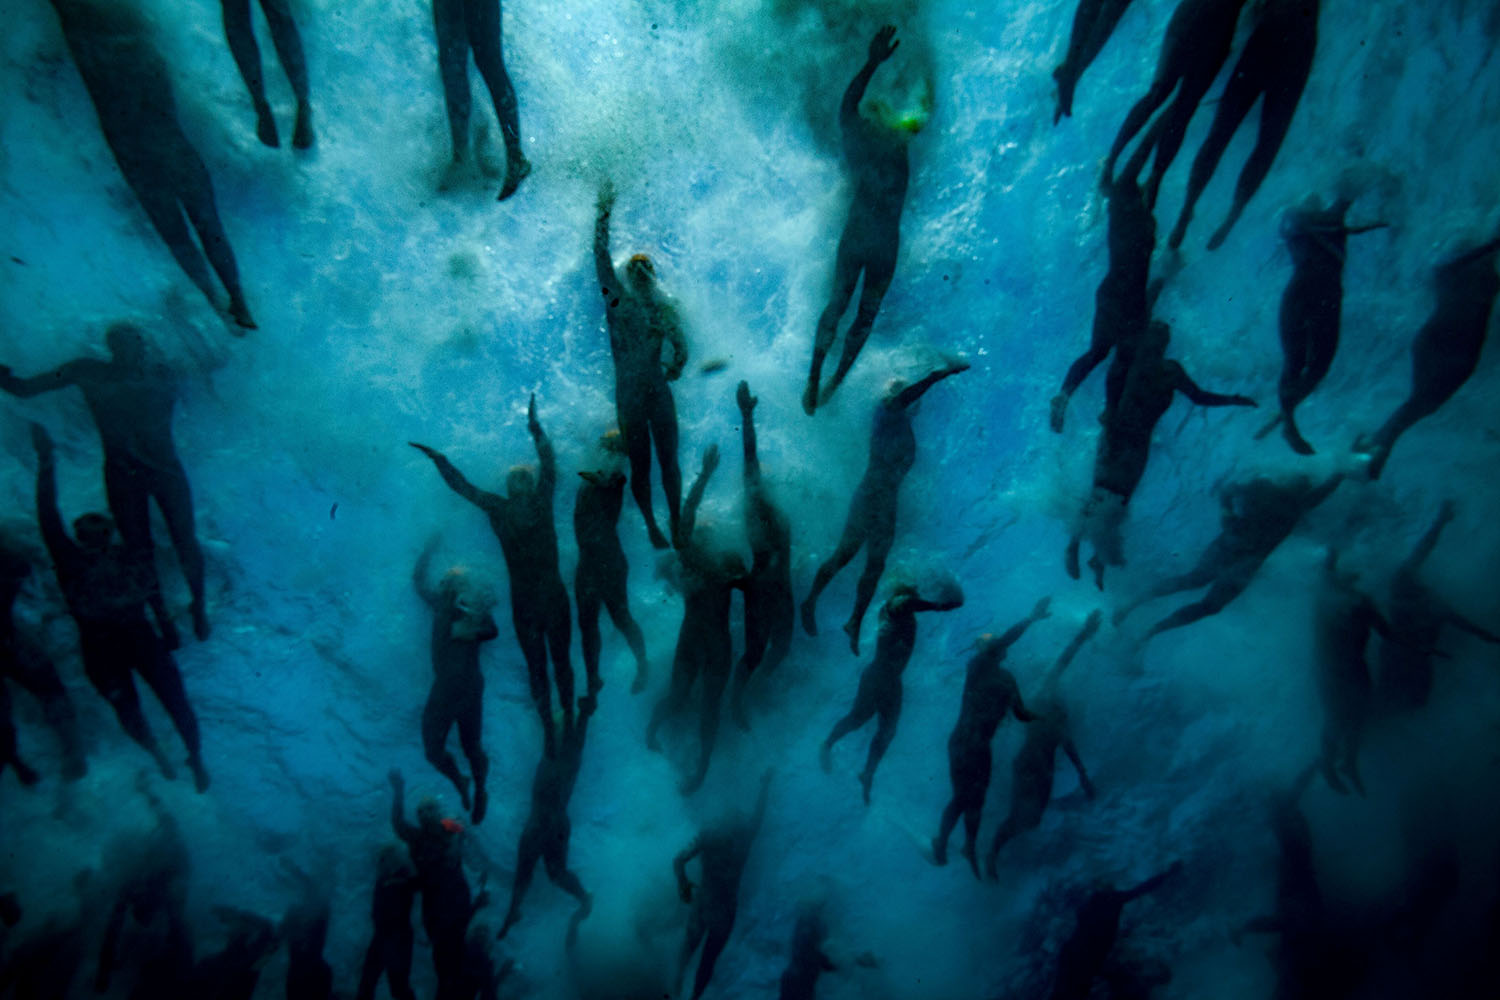 Swimmers compete in the Monte Cristo Challenge at the Chateau d'If, off the coast of Marseille, southern France, on June 21. BORIS HORVAT/AFP/Getty Images